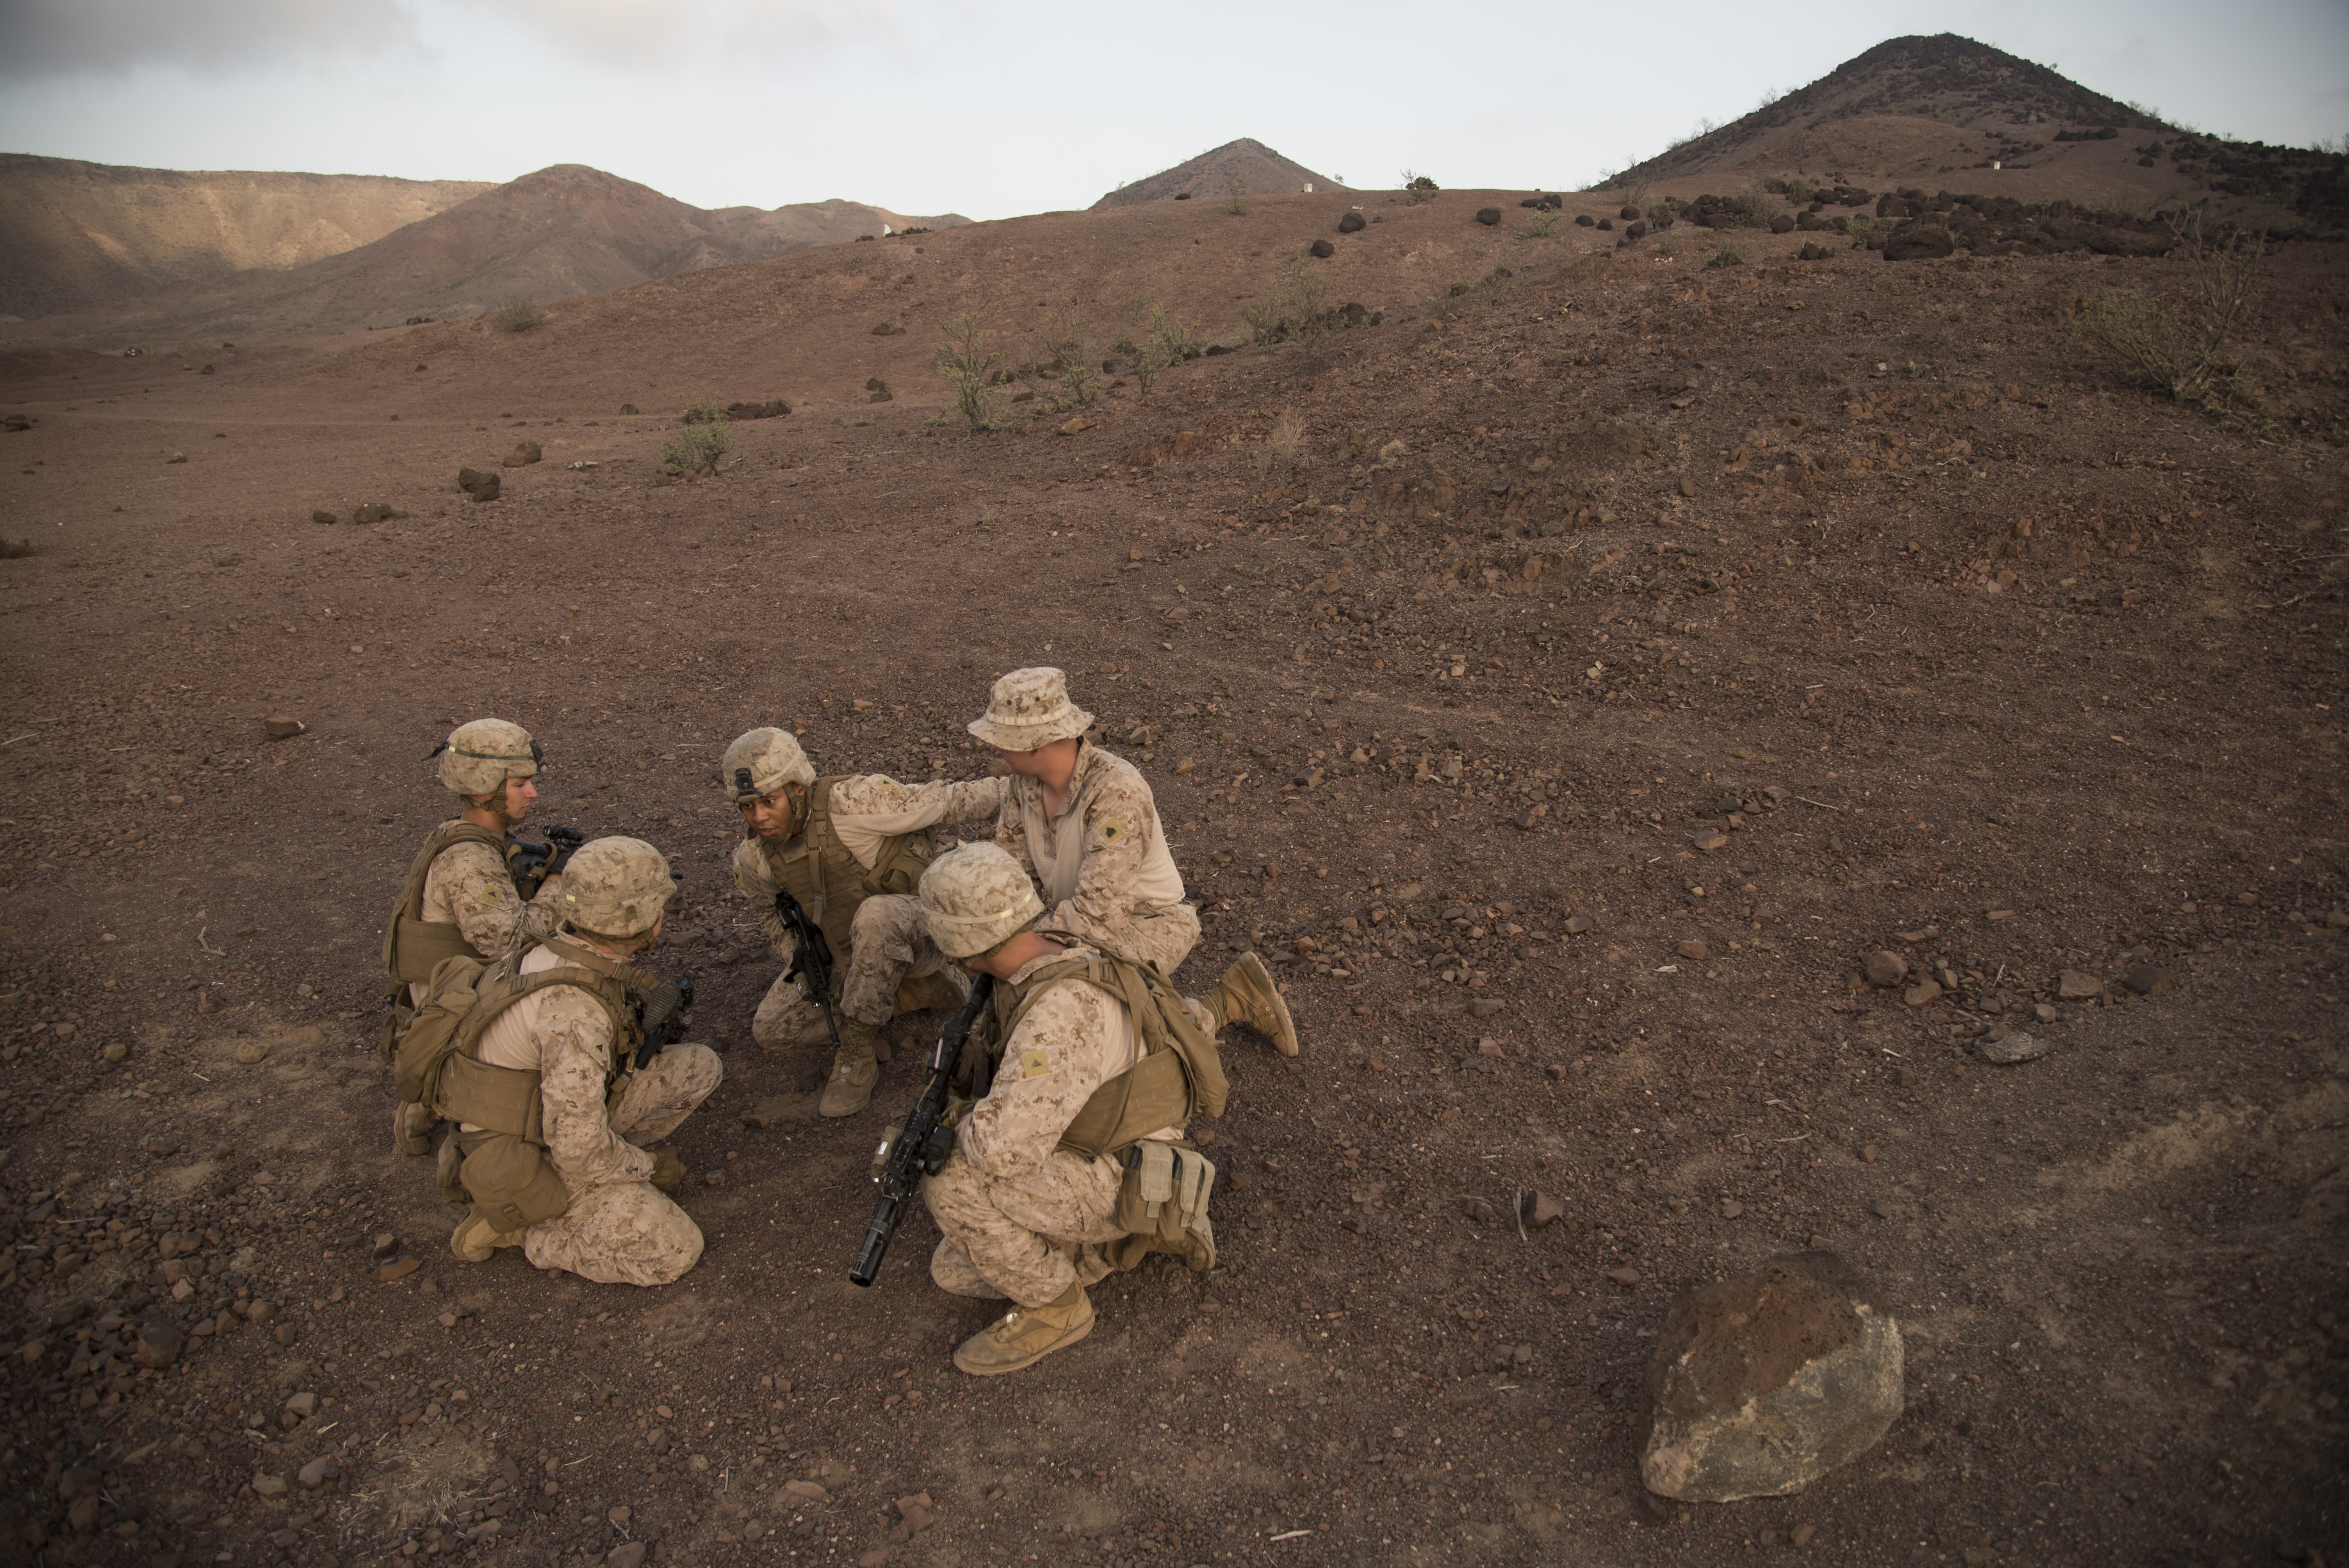 ARTA, Djibouti-U.S. Marines with Special-Purpose Marine Air-Ground Task Force Crisis Response-Africa (SPMAGTF-CR-AF), practice small arms fire team training before the live fire range drill, Oct. 5, 2016, at Arta, Djibouti. Assigned to Combined Joint Task Force-Horn of Africa, SPMAGTF-CR-AF completed team level range drills to continue sustainment of core skills and build from individual skill levels. The next level of training will consist of squad training. (U.S. Air Force photo by Staff Sgt. Tiffany DeNault)